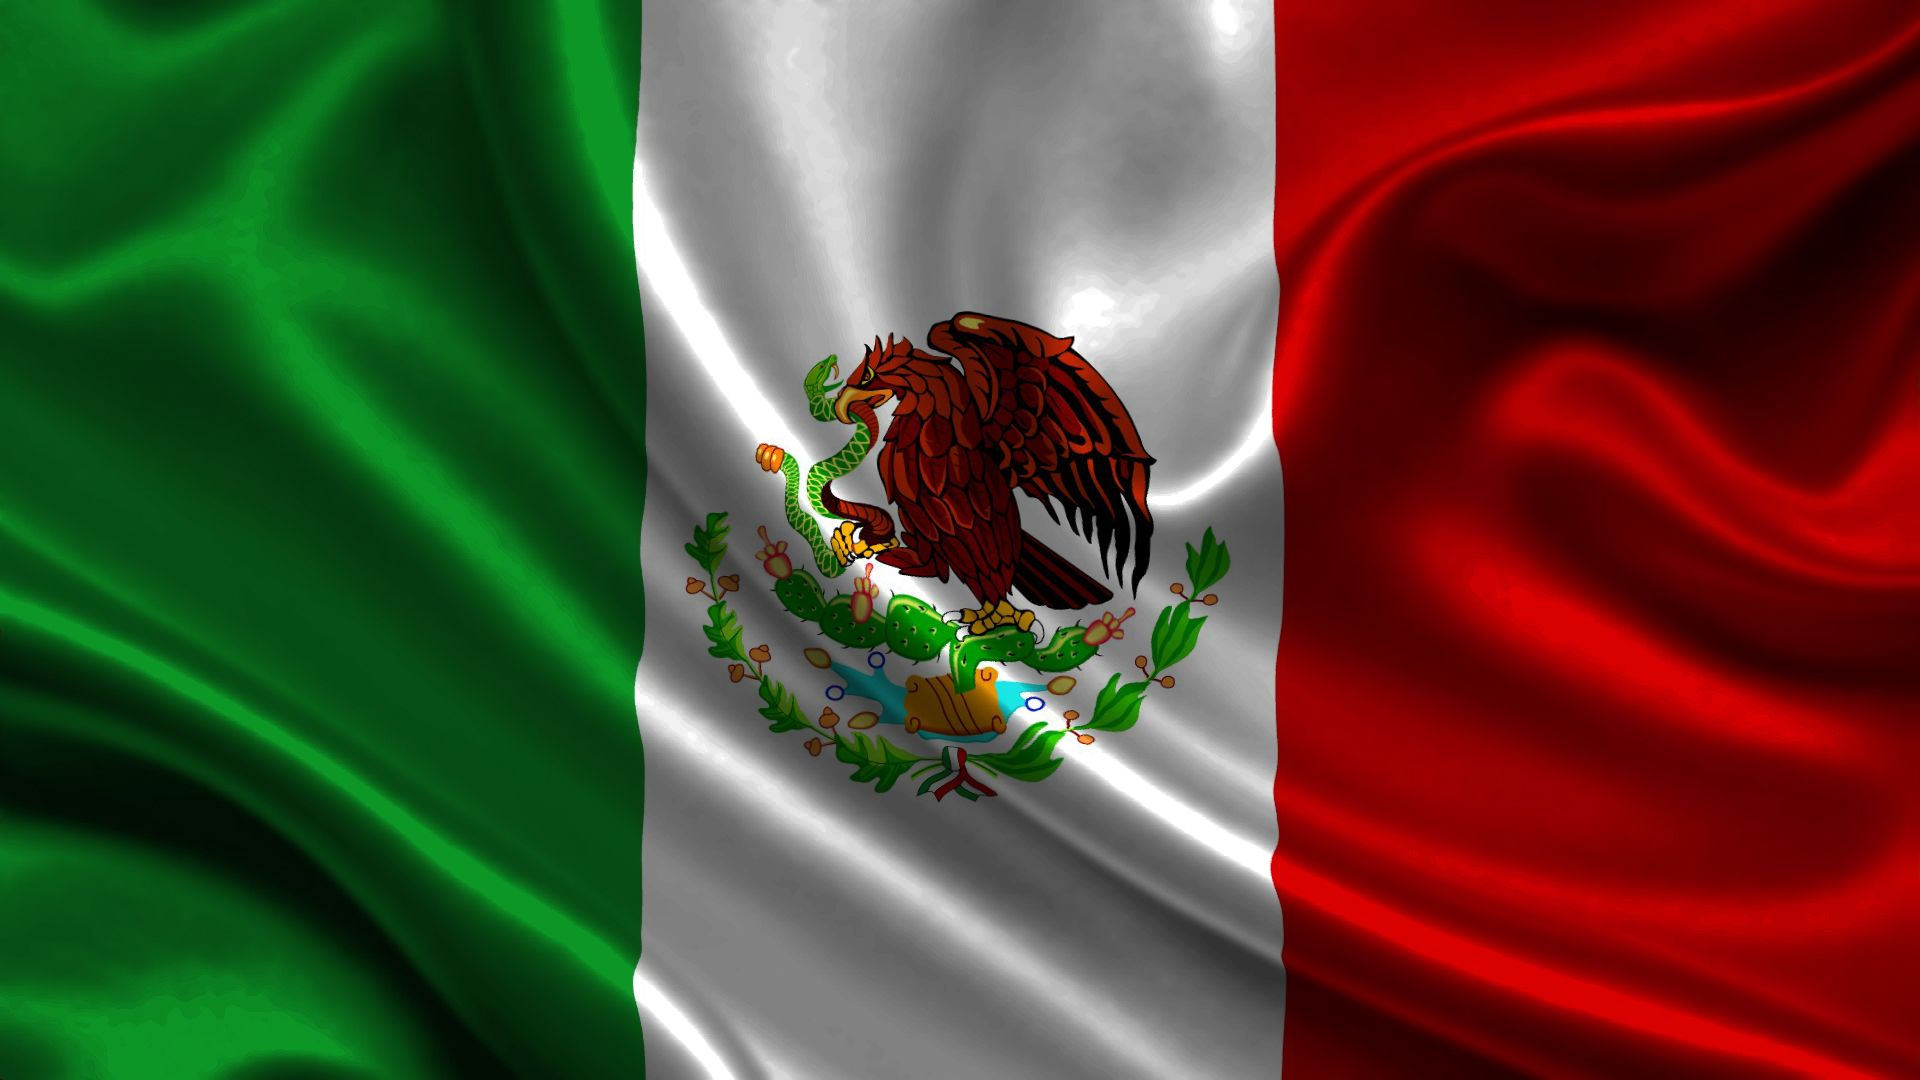 Best Pyramids Images On Pinterest Mexican Art Mexico Wallpaper Italian Flag Image